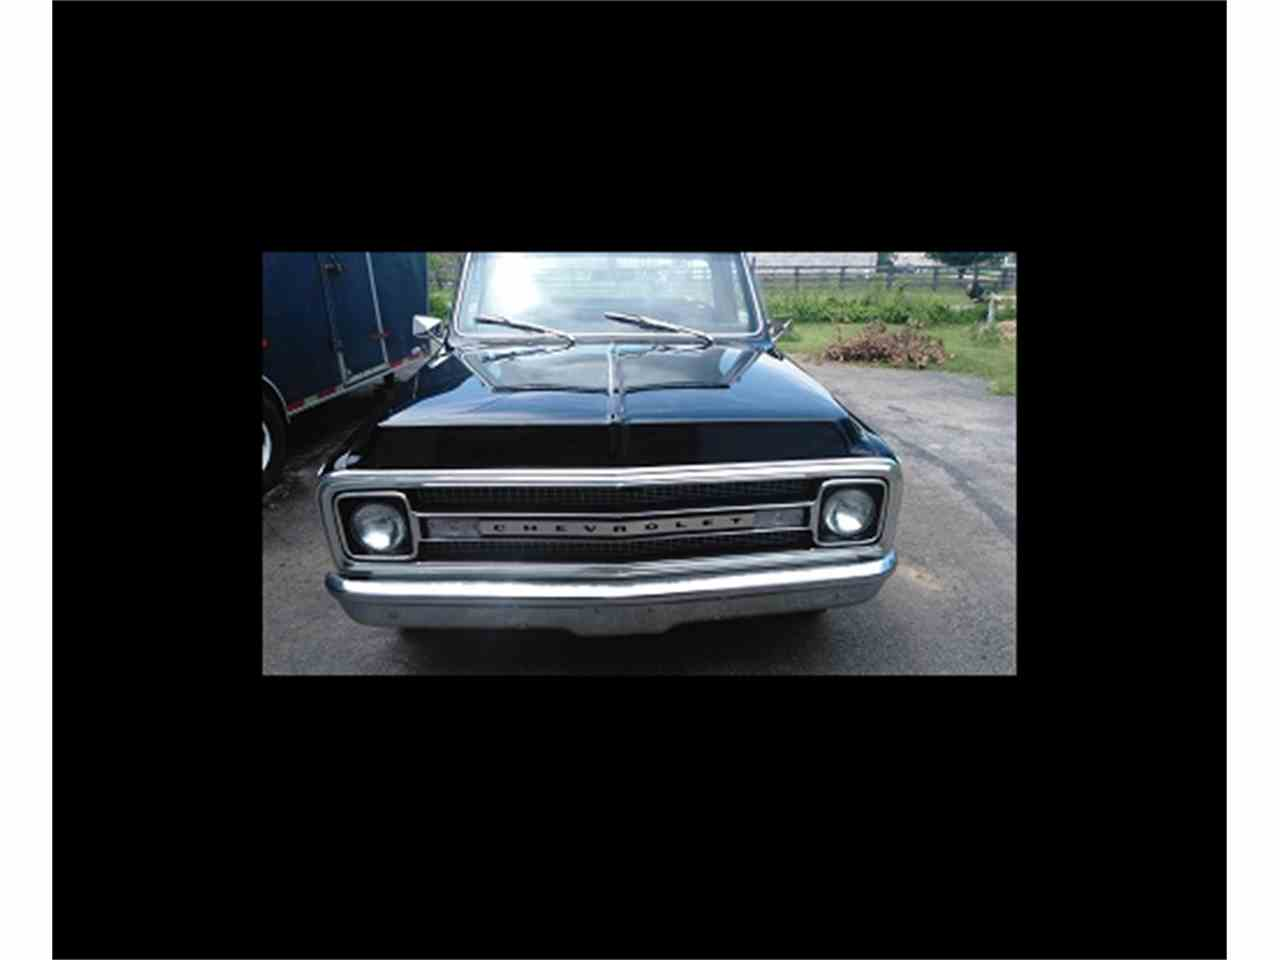 Large Picture of 1970 Chevrolet  C10 located in Kentucky Offered by a Private Seller - KXVO